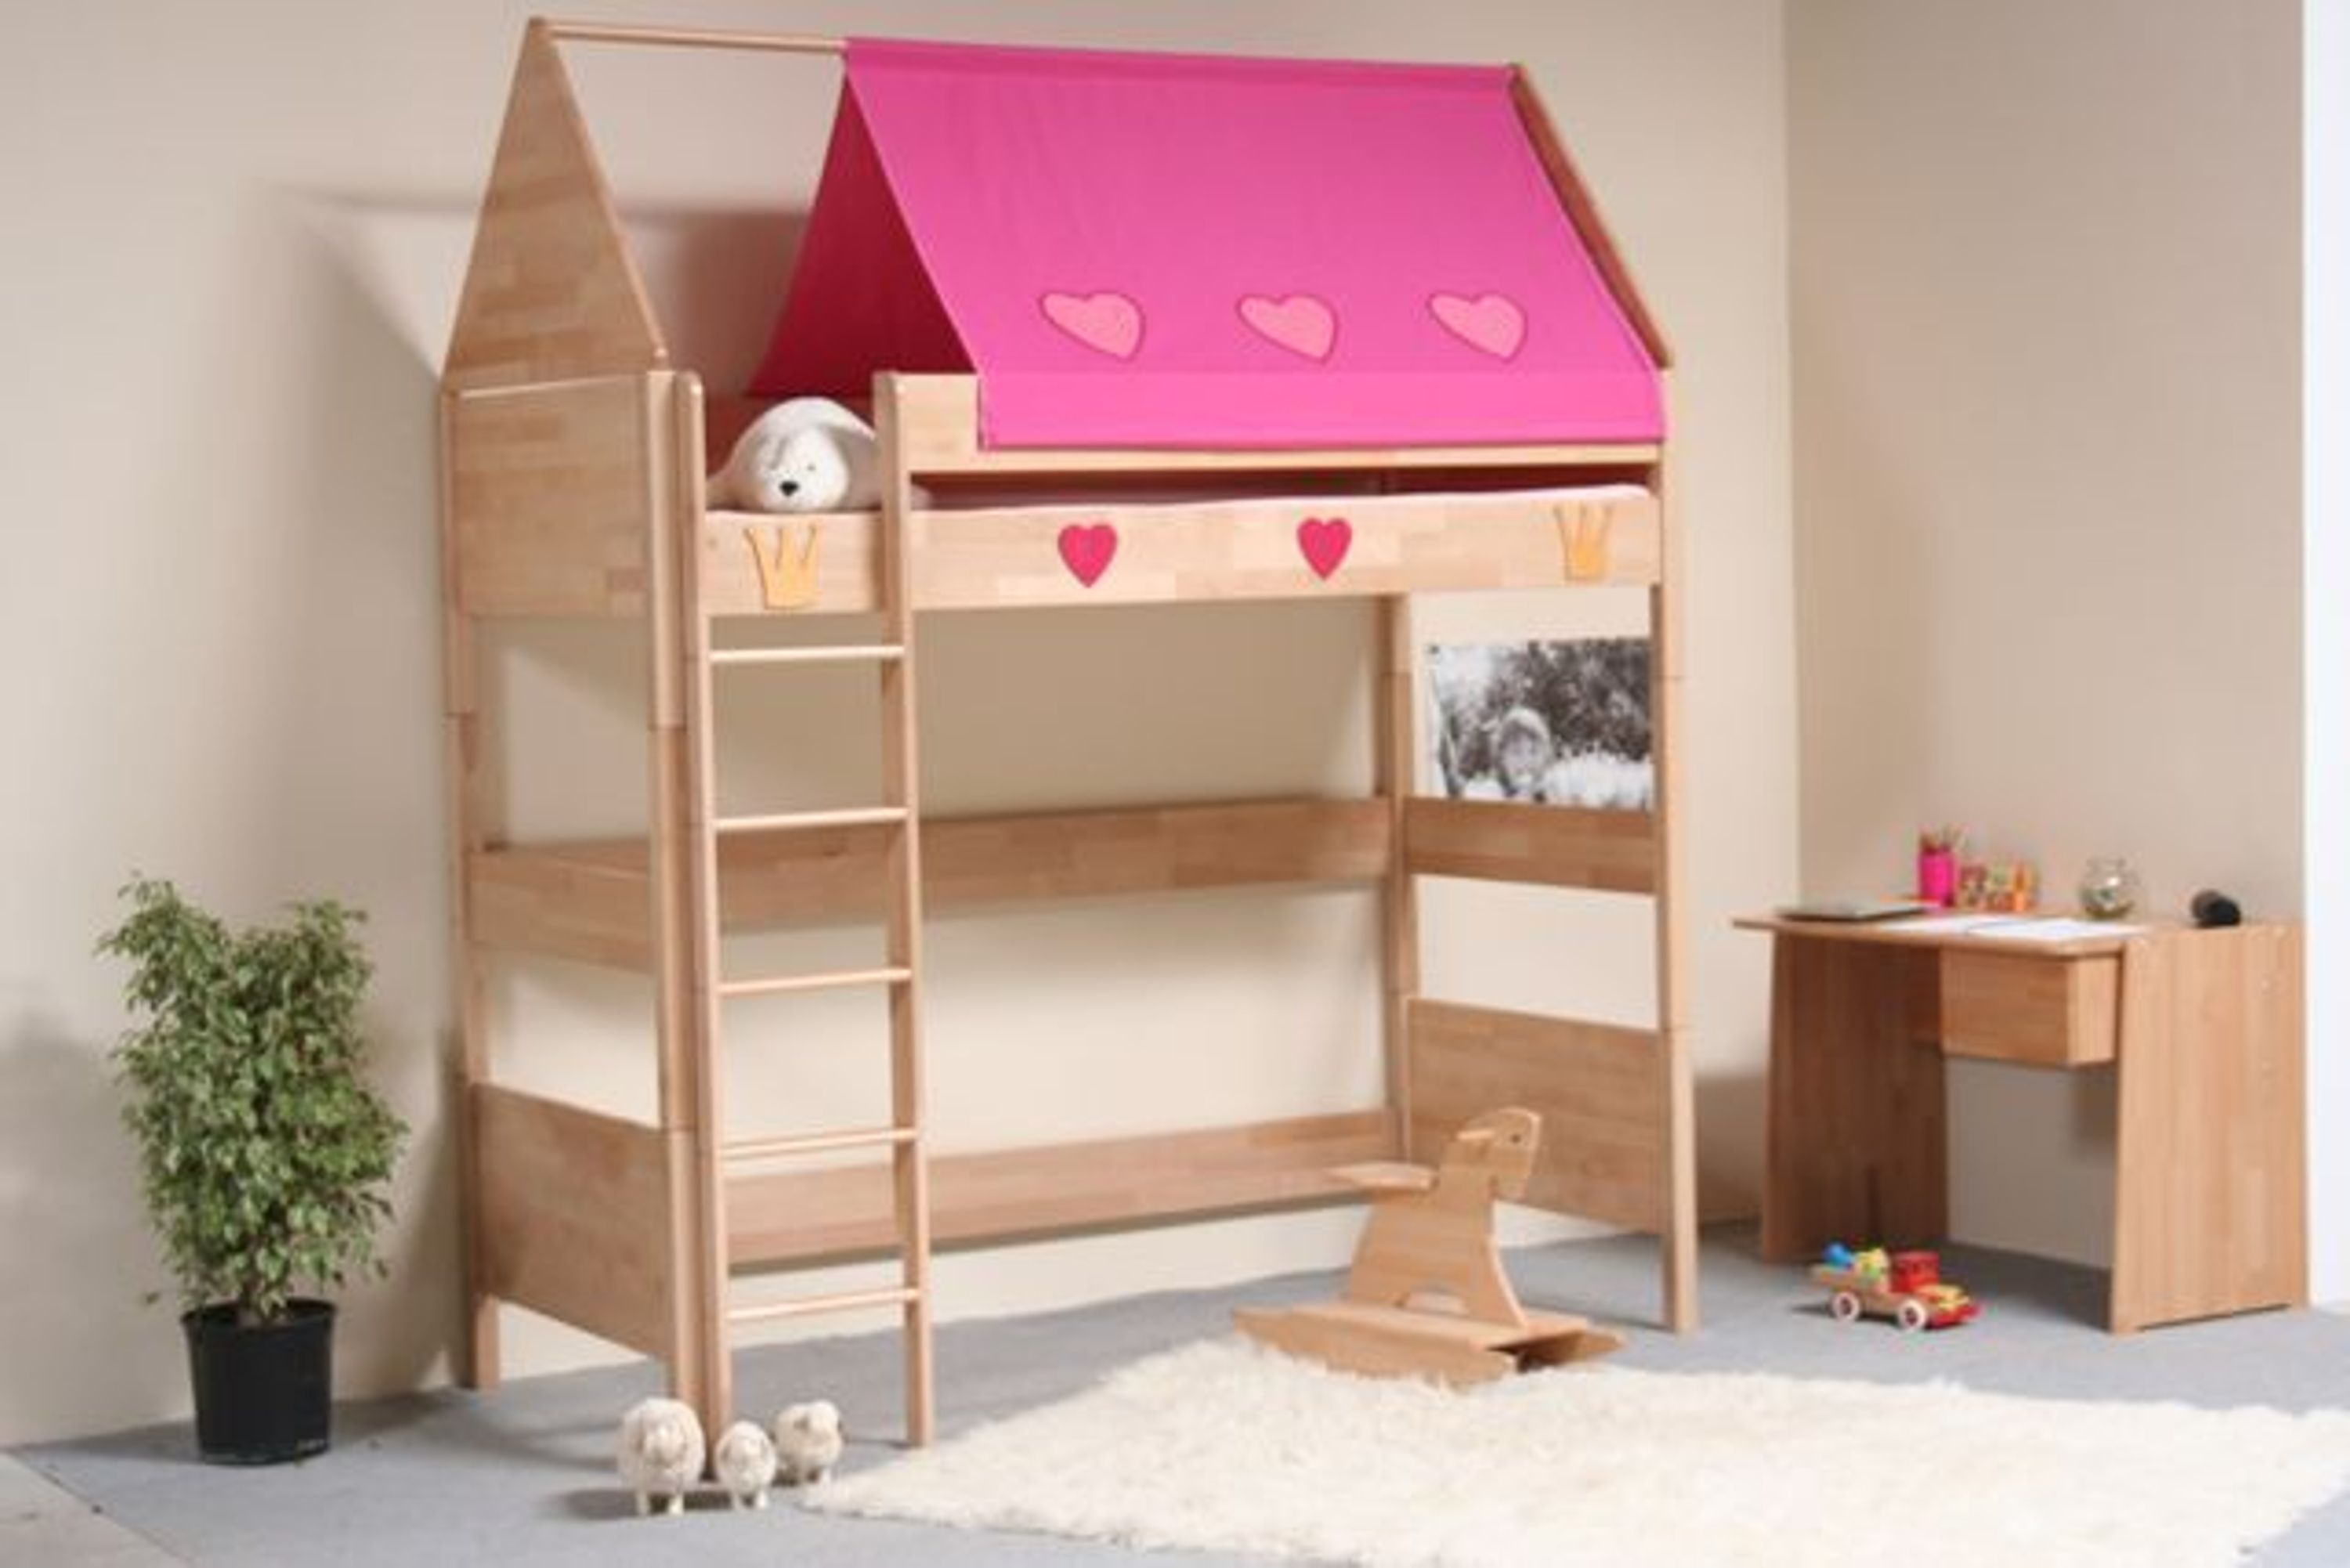 taube m bel hochbett prinzessin h he 154 182 mit dach buche massiv kaufen bei. Black Bedroom Furniture Sets. Home Design Ideas